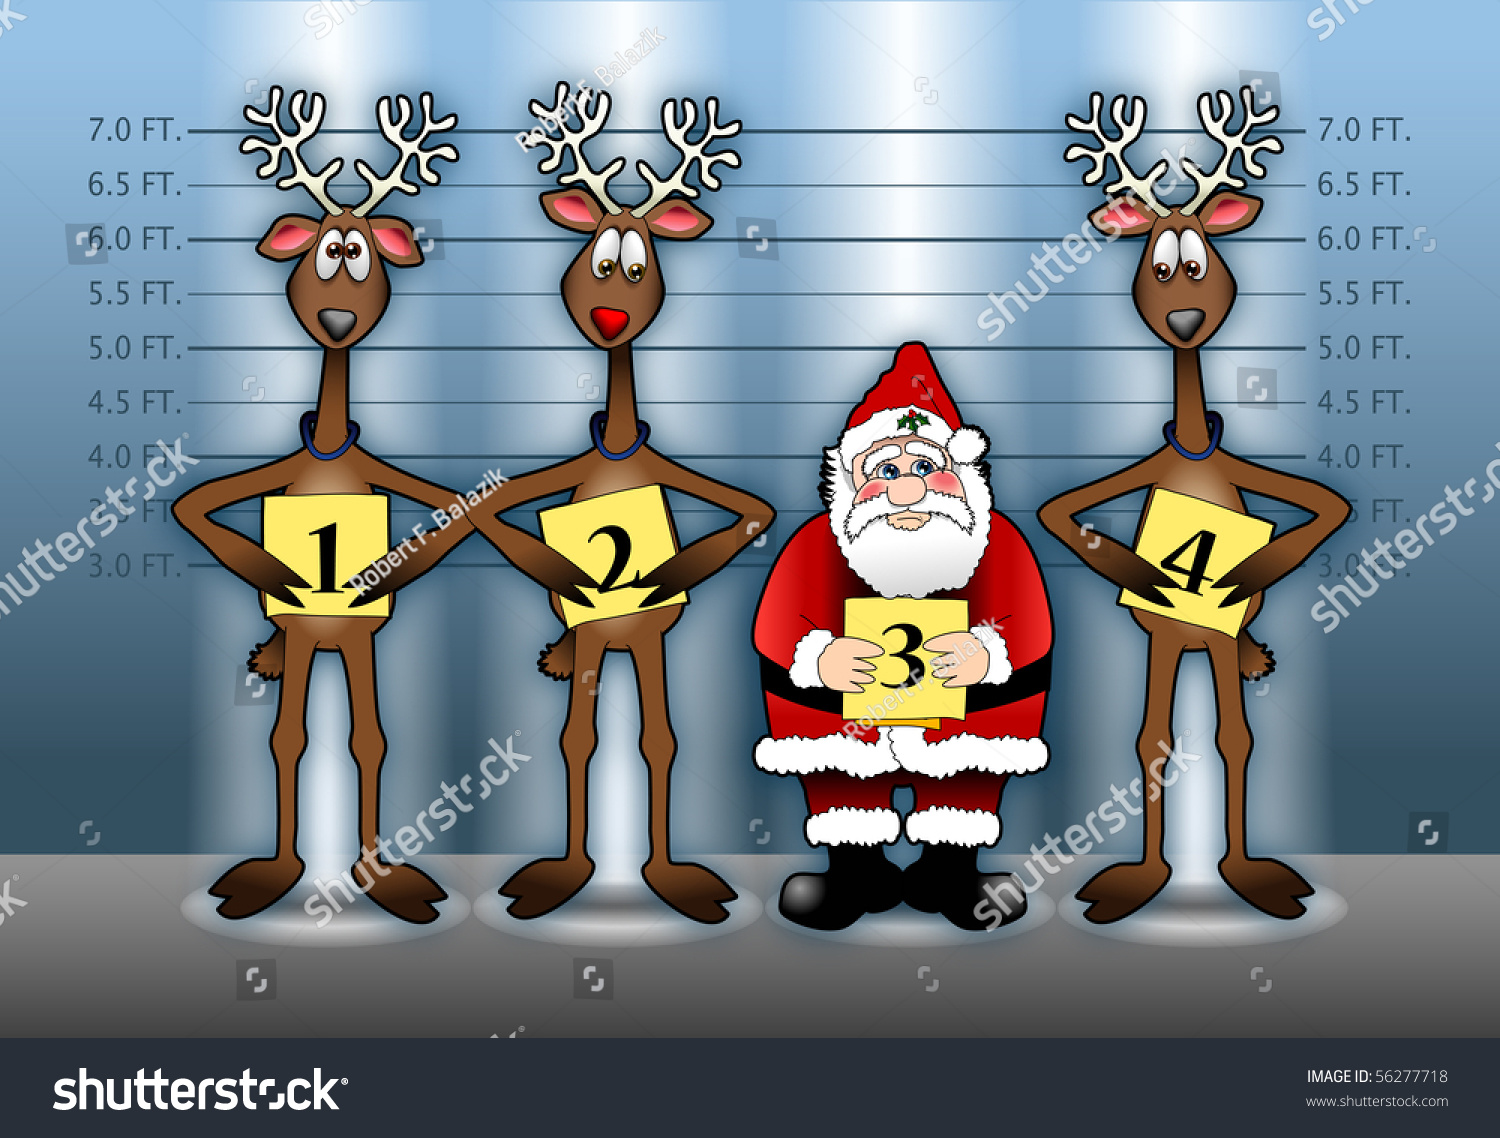 Cartoon Illustration Depicting Santa Claus His Stock